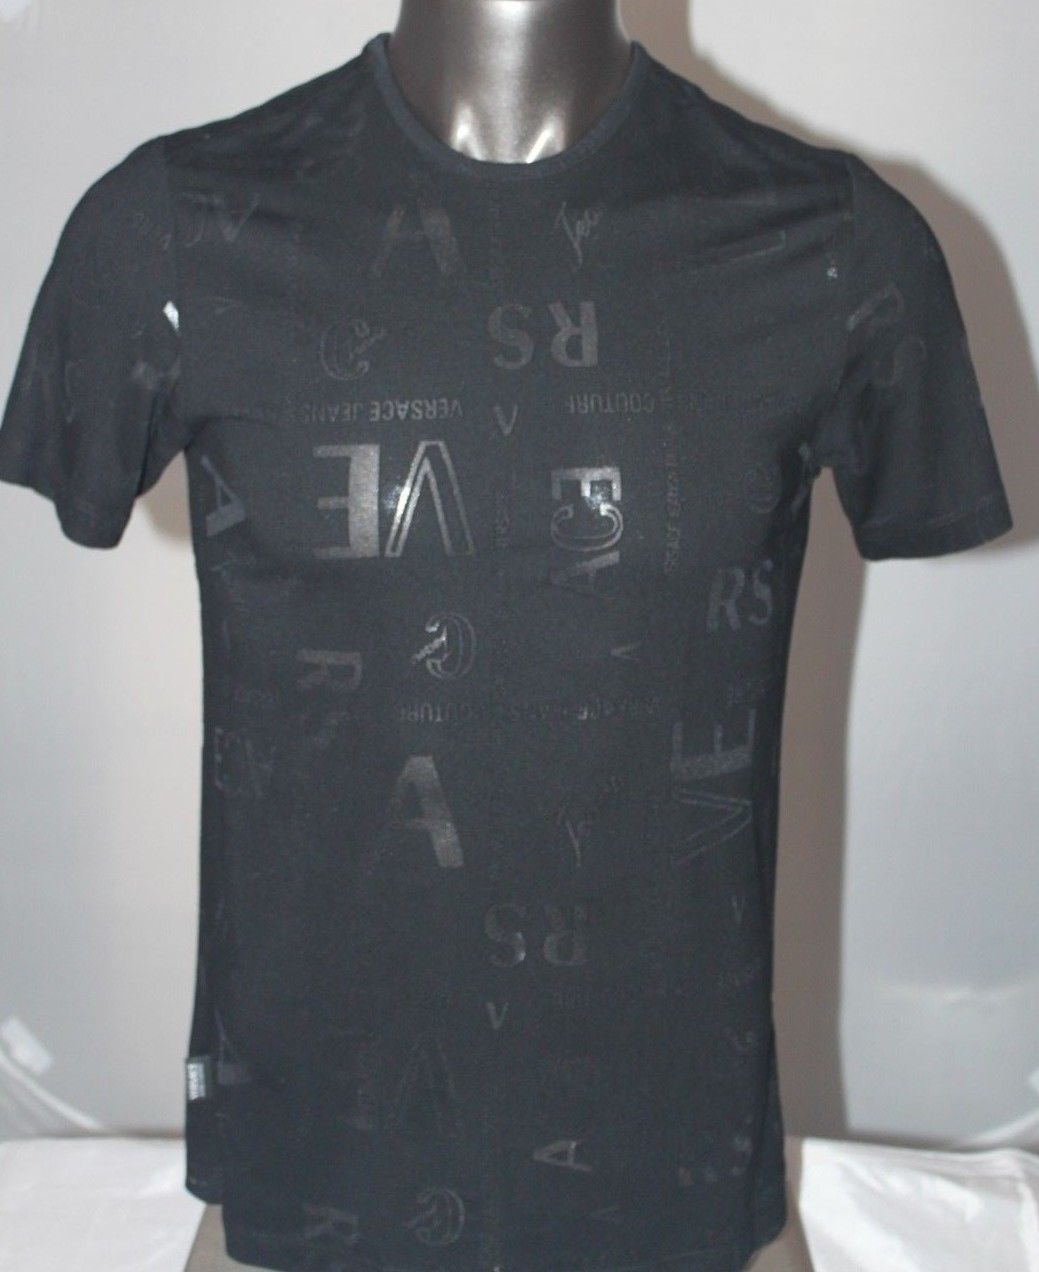 f8dad965f 37.11 | Vintage Versace Jeans Couture see through T-shirt Medium Black ❤  #vintage #versace #jeans #couture #through #shirt #medium #black #design  #food ...